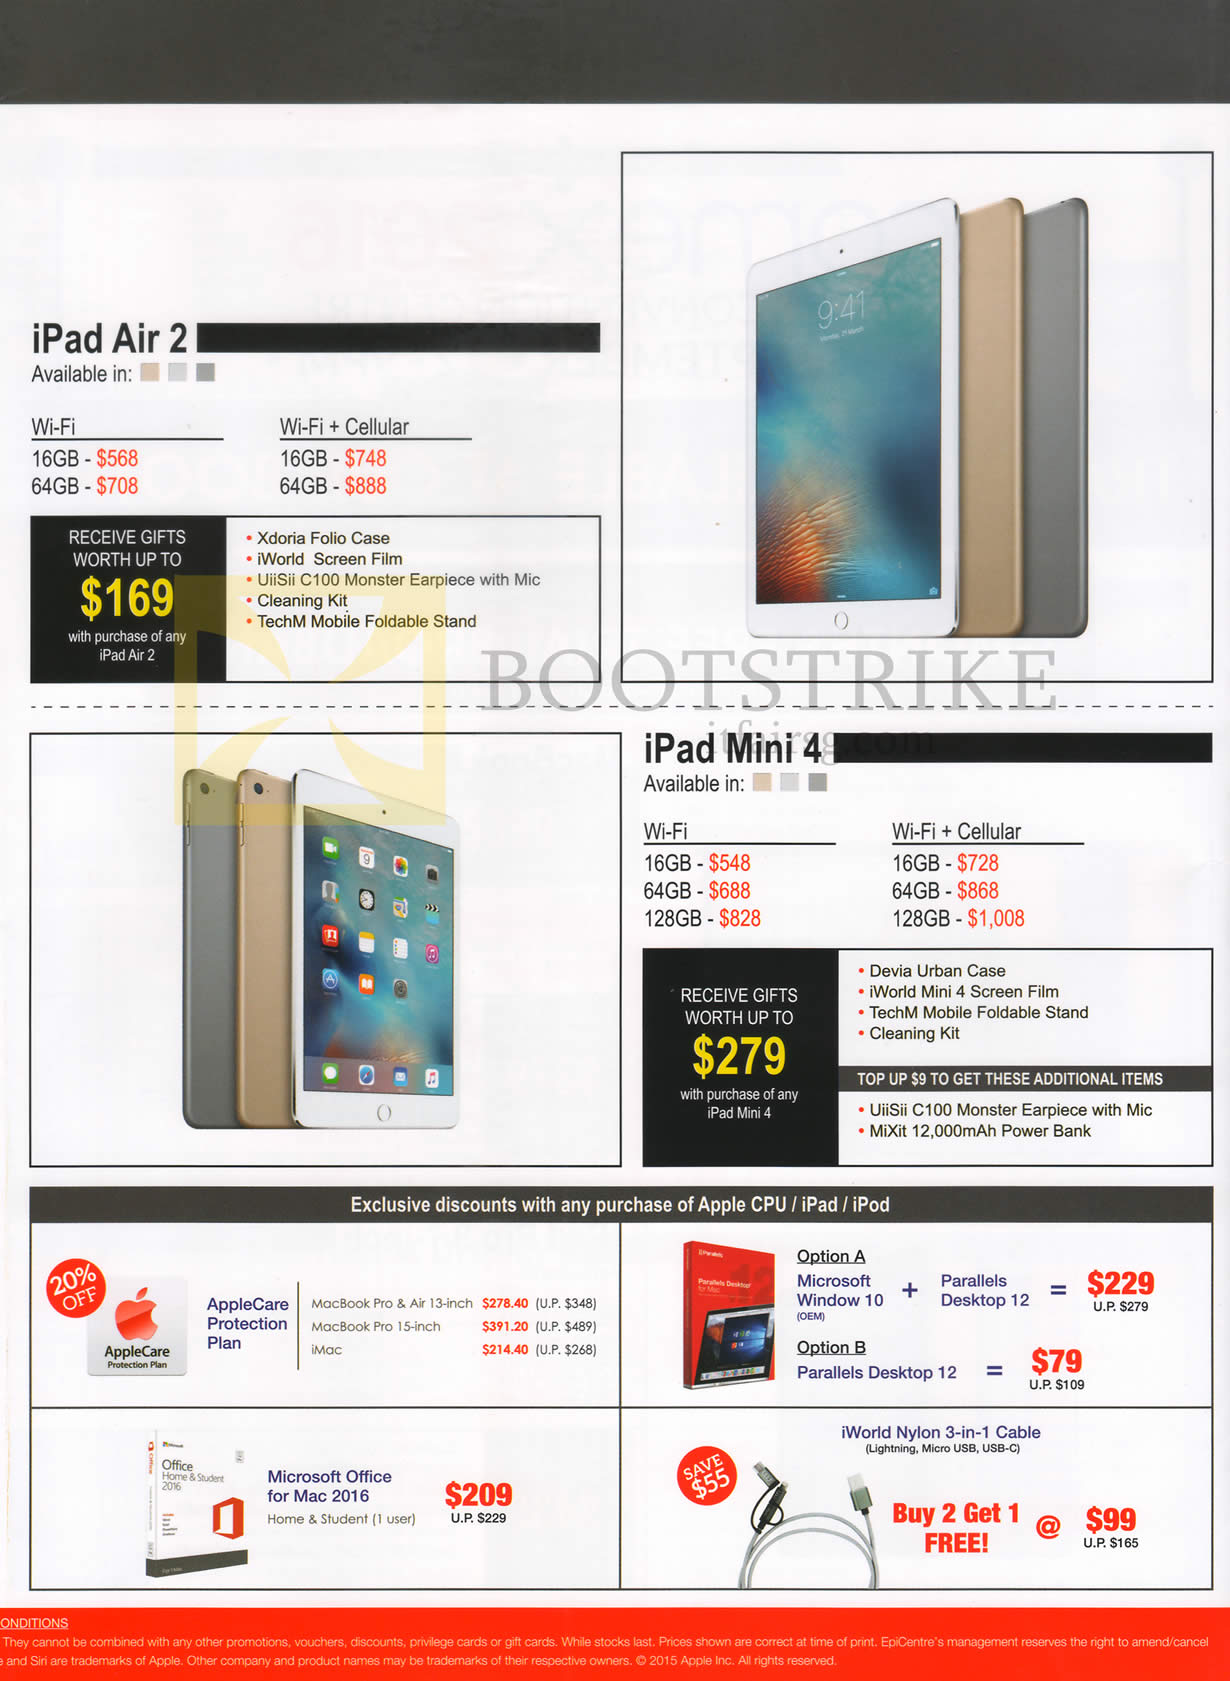 COMEX 2016 price list image brochure of EpiCentre Tablets Apple IPad Air 2, Mini 4, Apple Care Protection Plan, Microsoft Office For Mac 2016, Cable